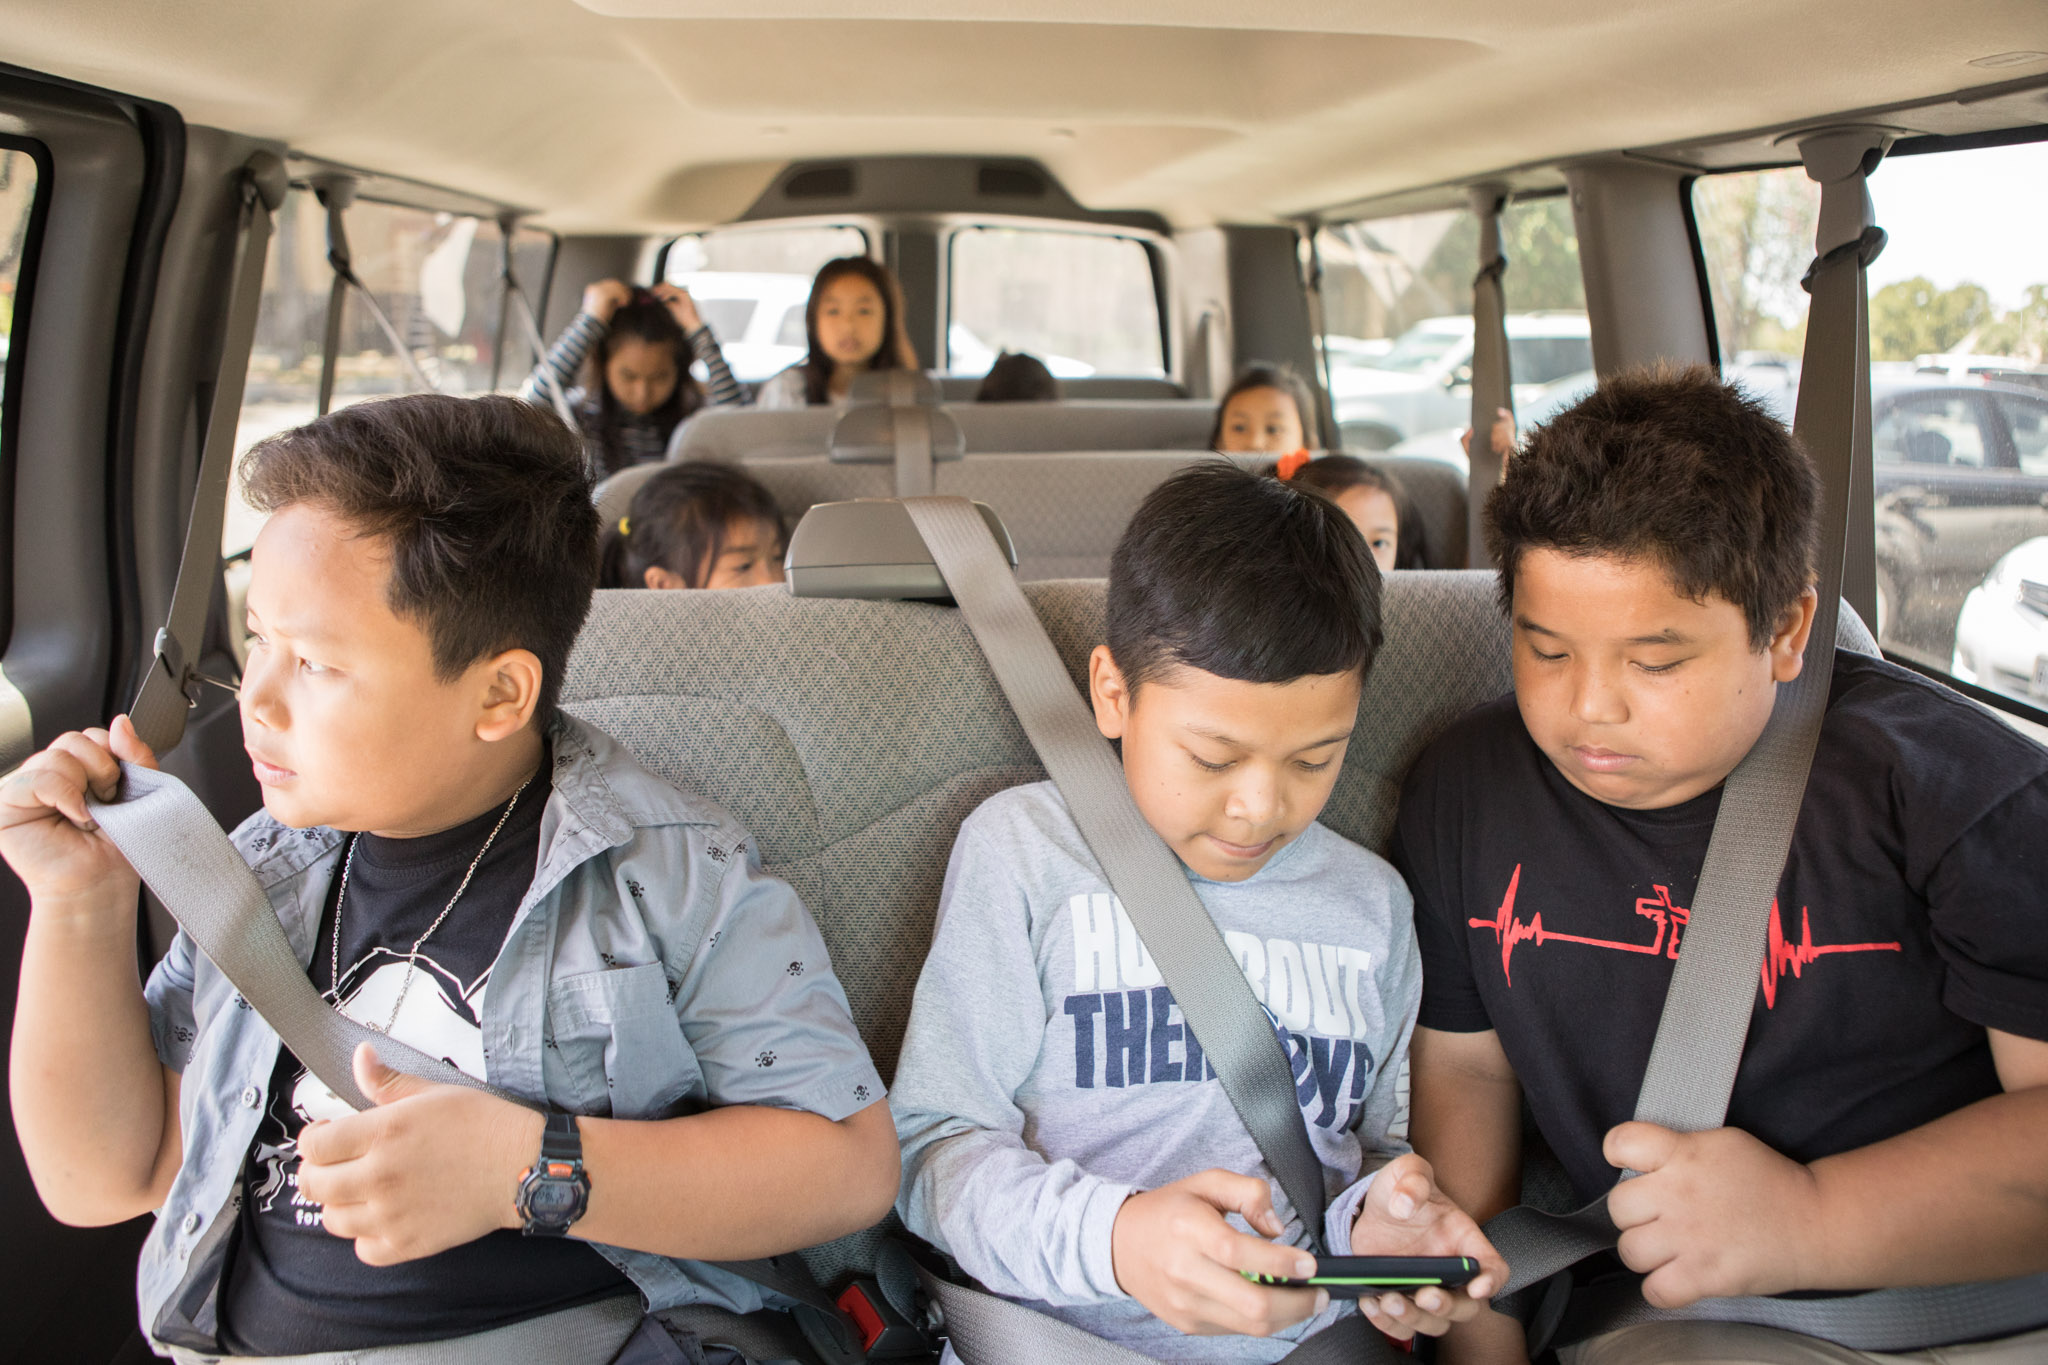 Students are driven home in a van after camp is done for the day.